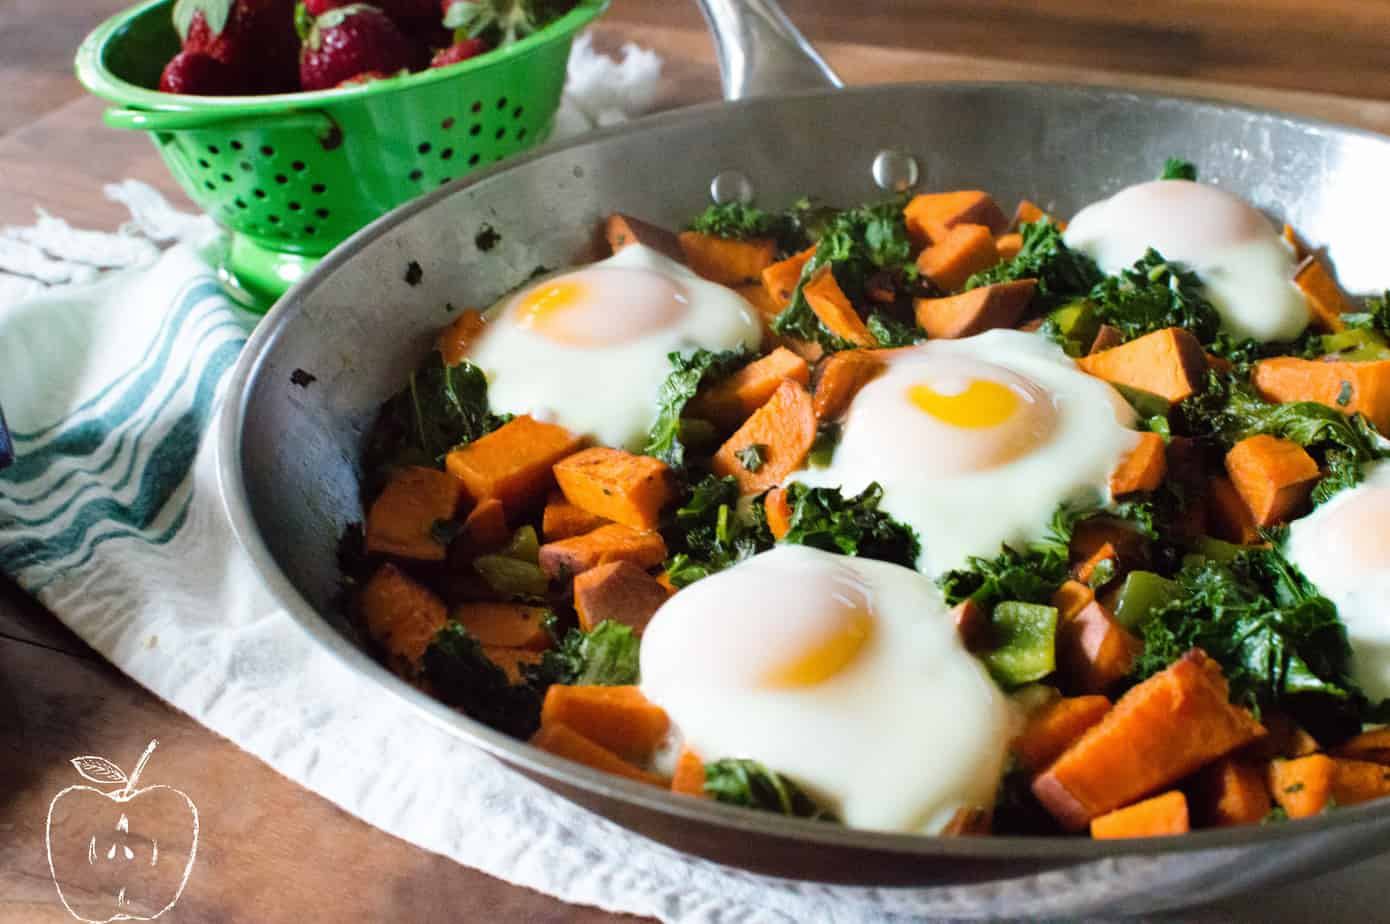 Side view of the healthy One-Skillet Sweet Potato & Kale Fries with Eggs served hot and fresh with strawberries in the background